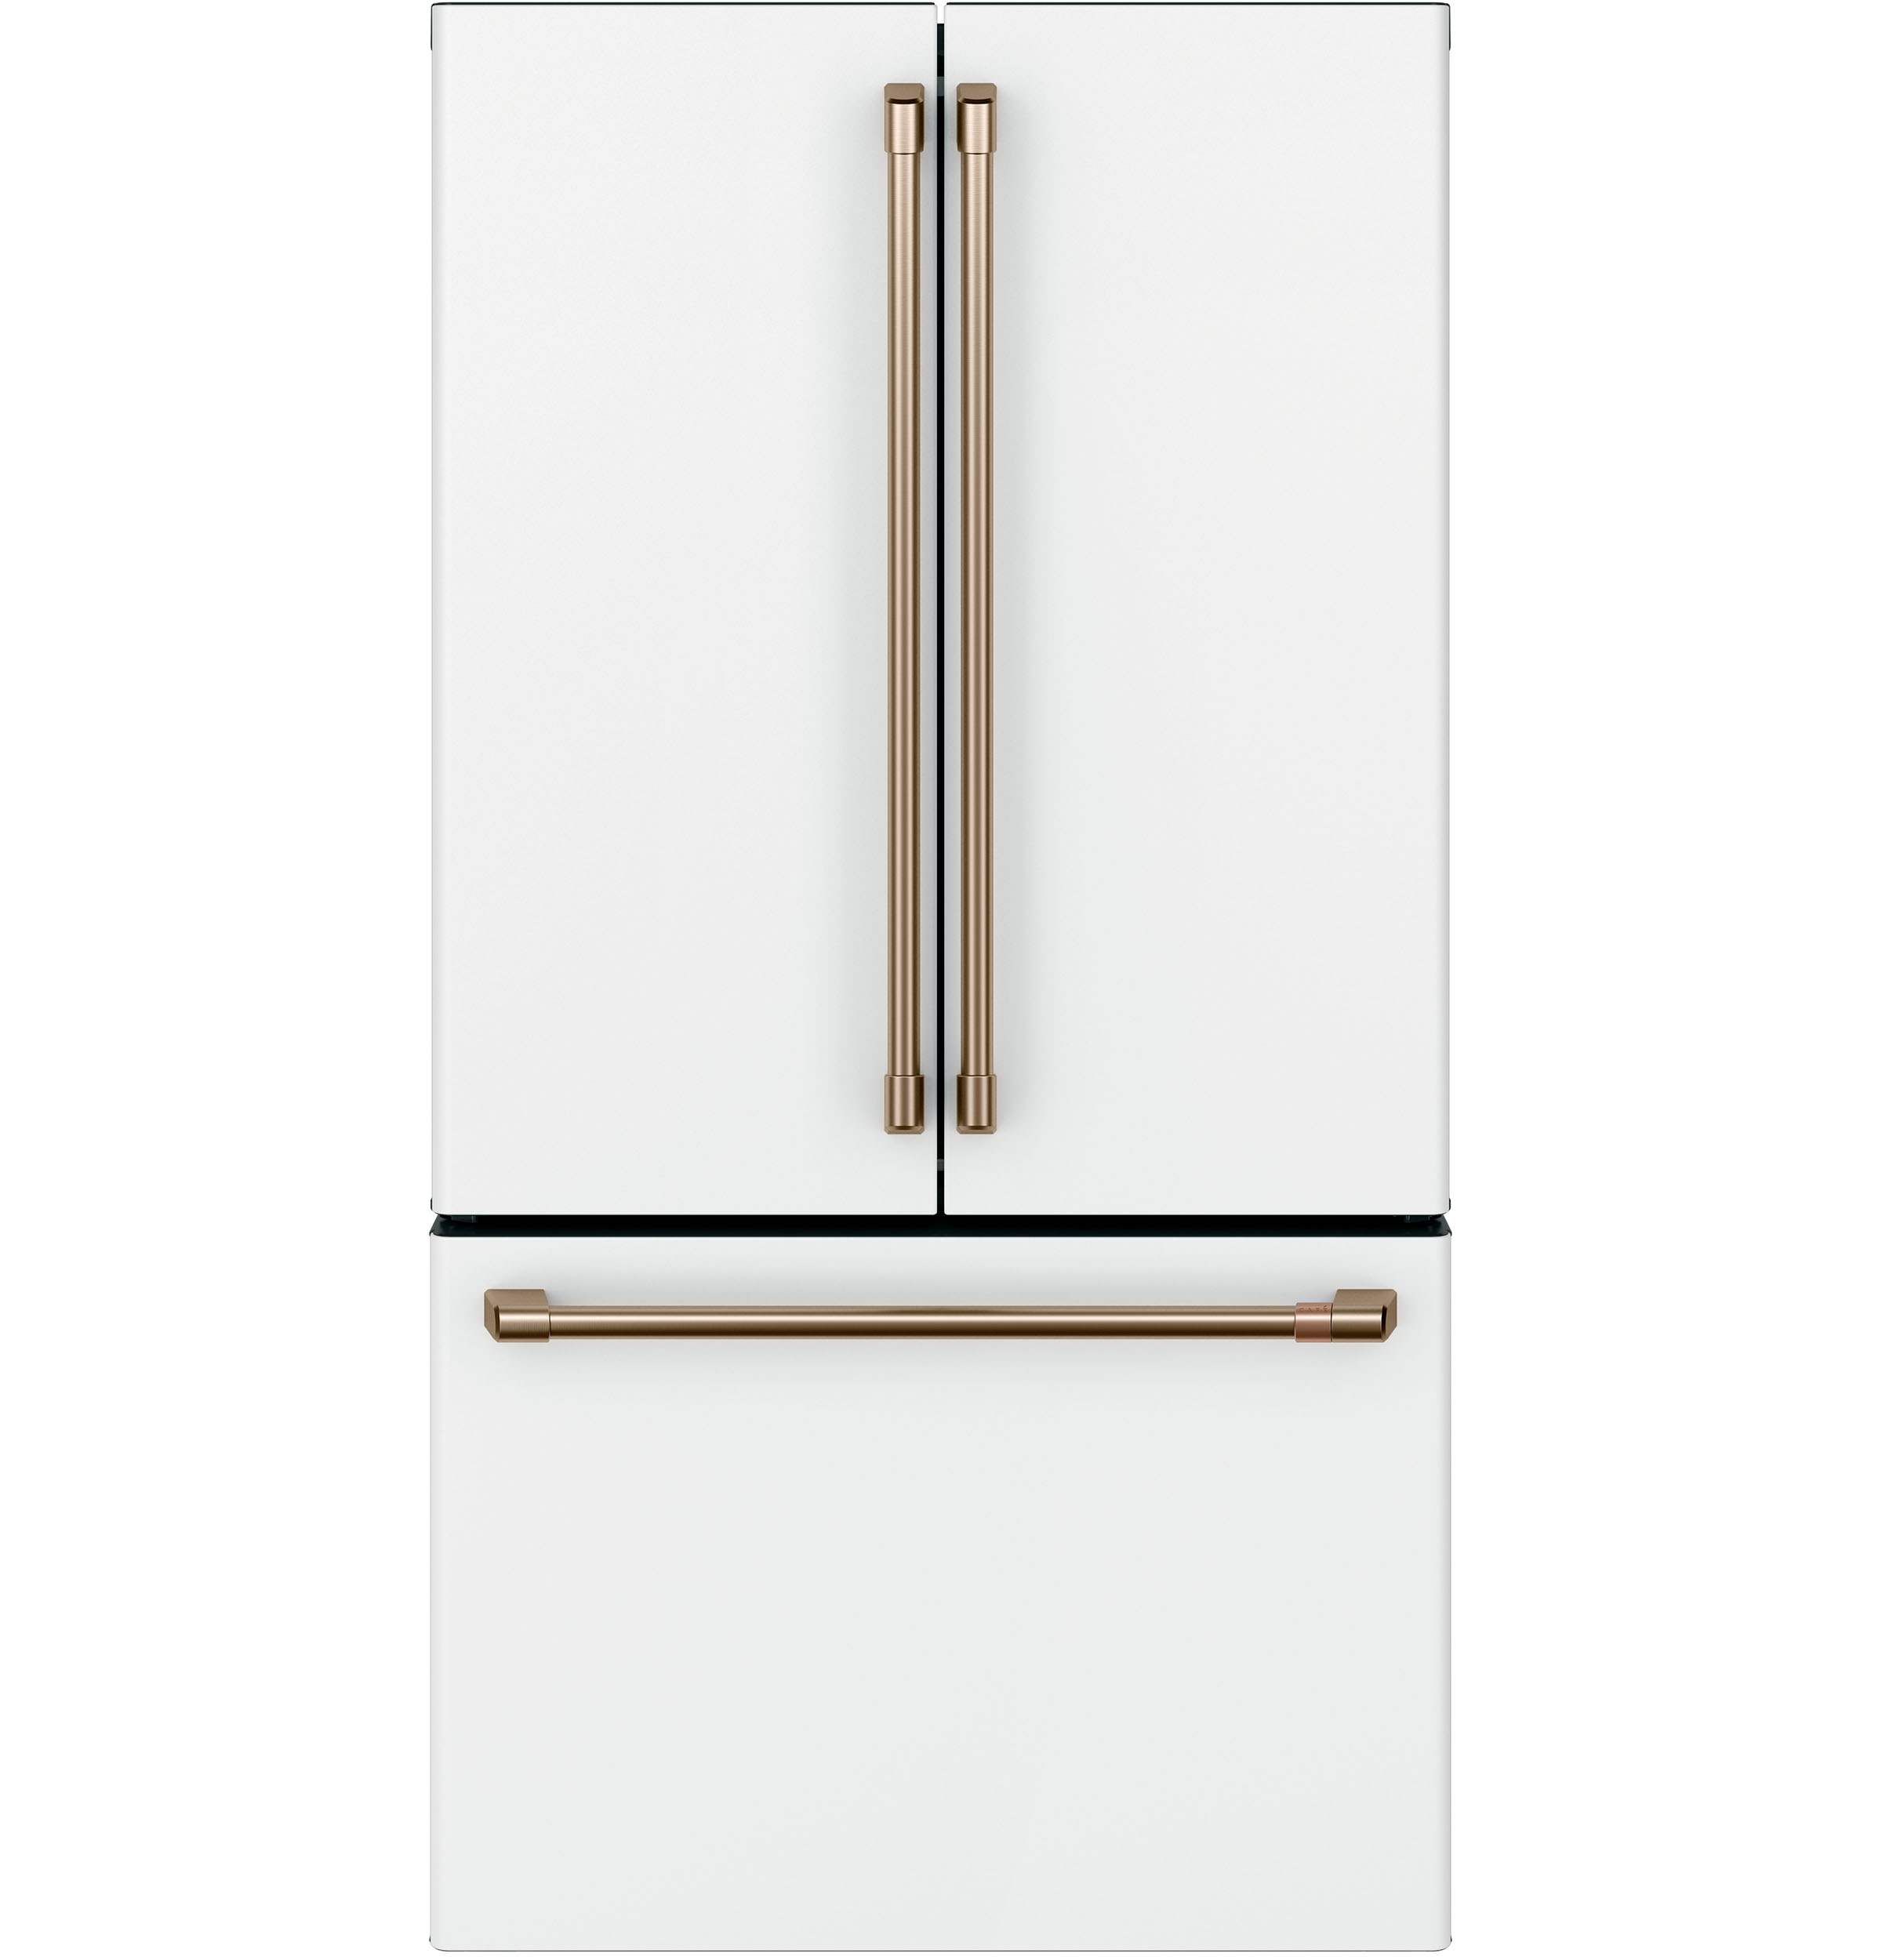 Cafe Café™ ENERGY STAR® 23.1 Cu. Ft. Smart Counter-Depth French-Door Refrigerator